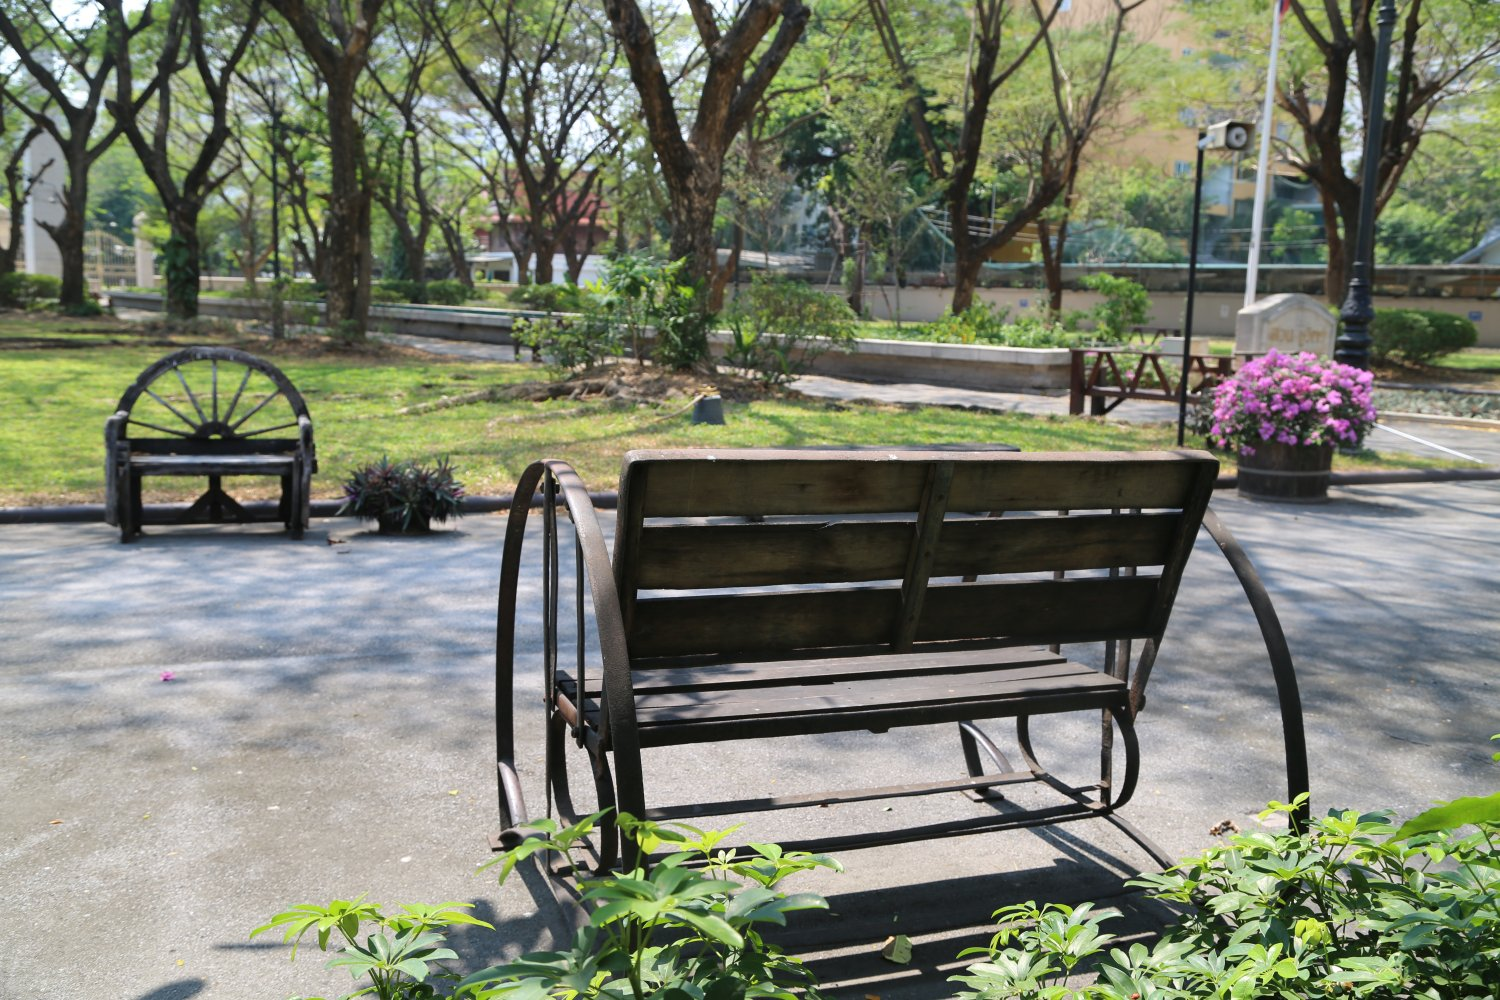 Nice spot to come and do some reading  Hours are a bit odd   8am until  10am  then closed  and reopens from 4pm until 10pm. Bangkok  Thailand   Parks   Dave s Travel Corner